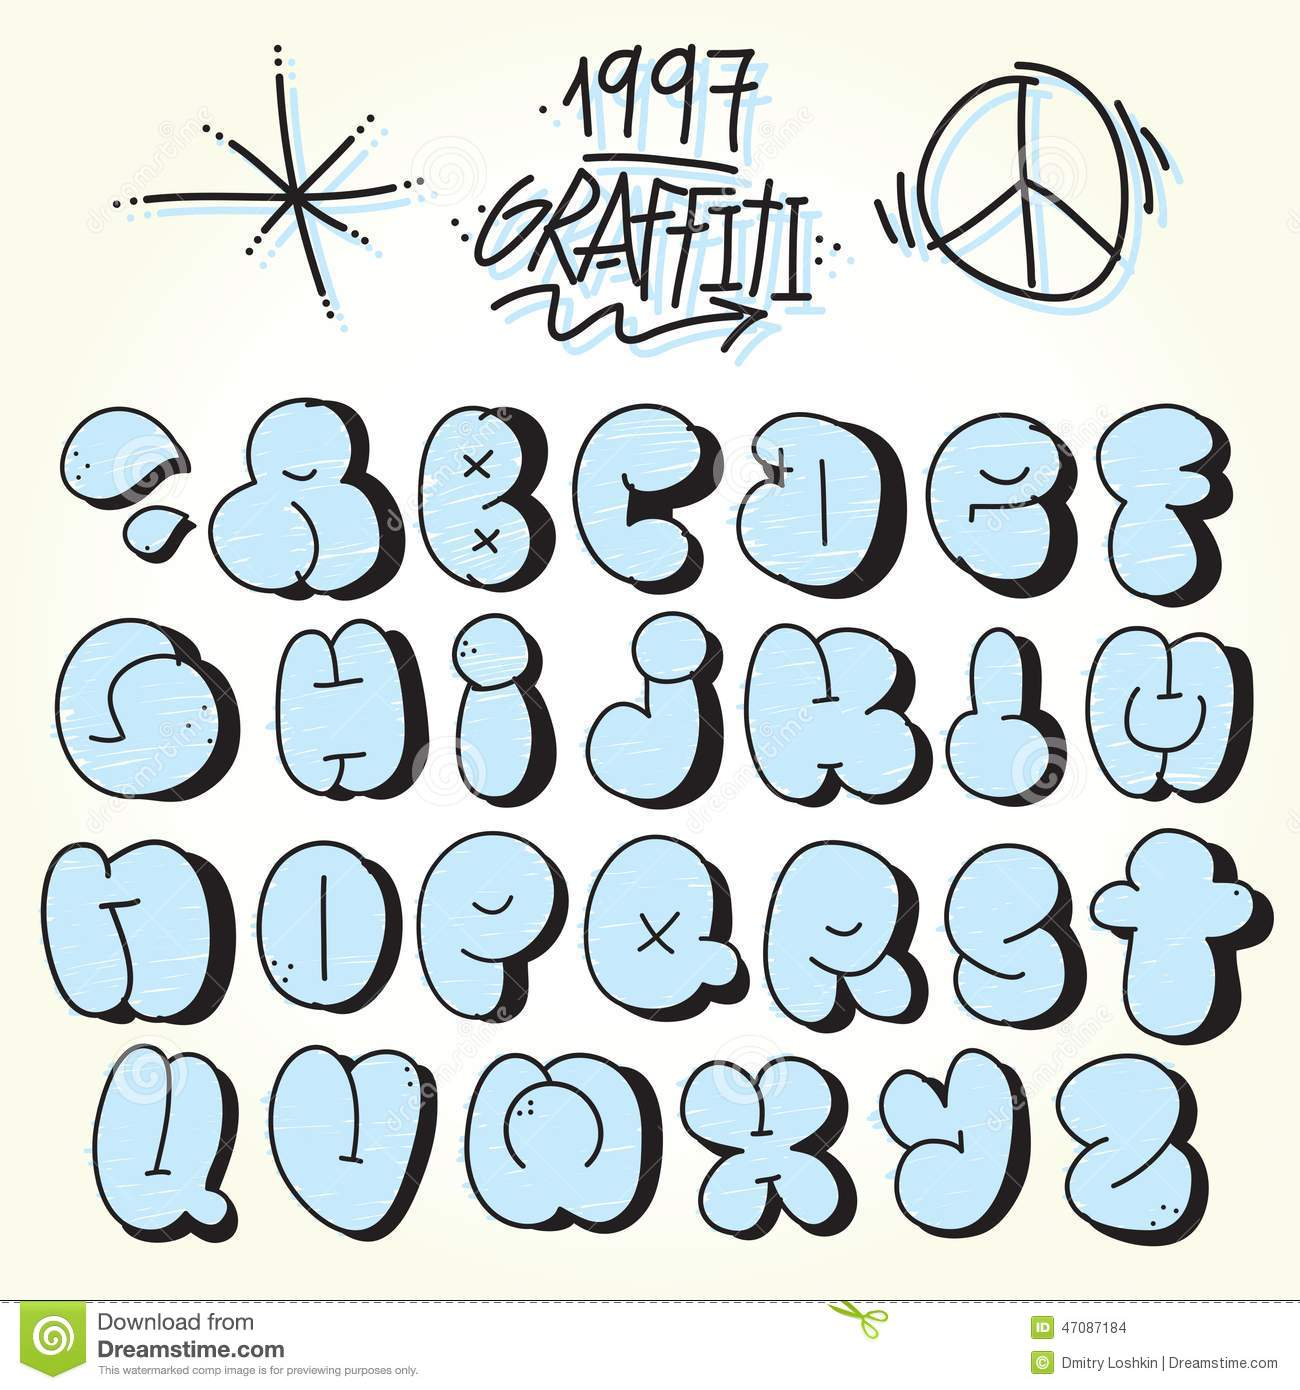 Graffiti bubble vector font